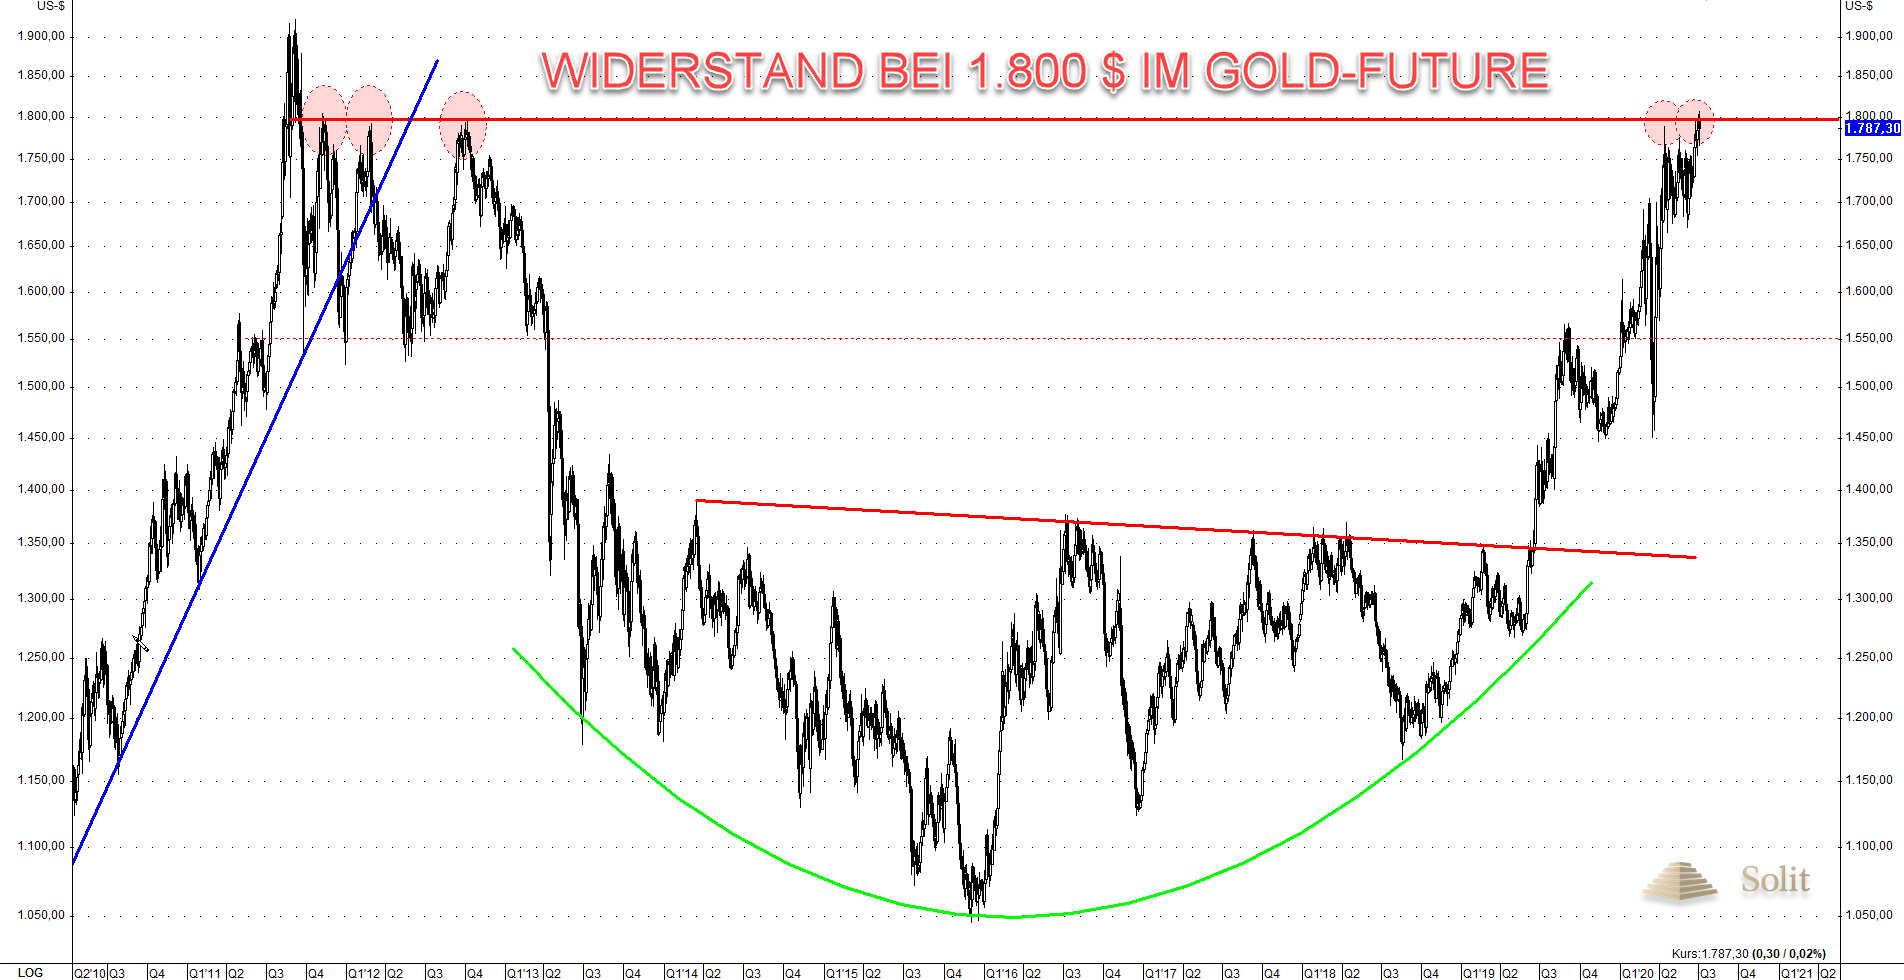 Gold Commitment of Traders III 06.07.2020